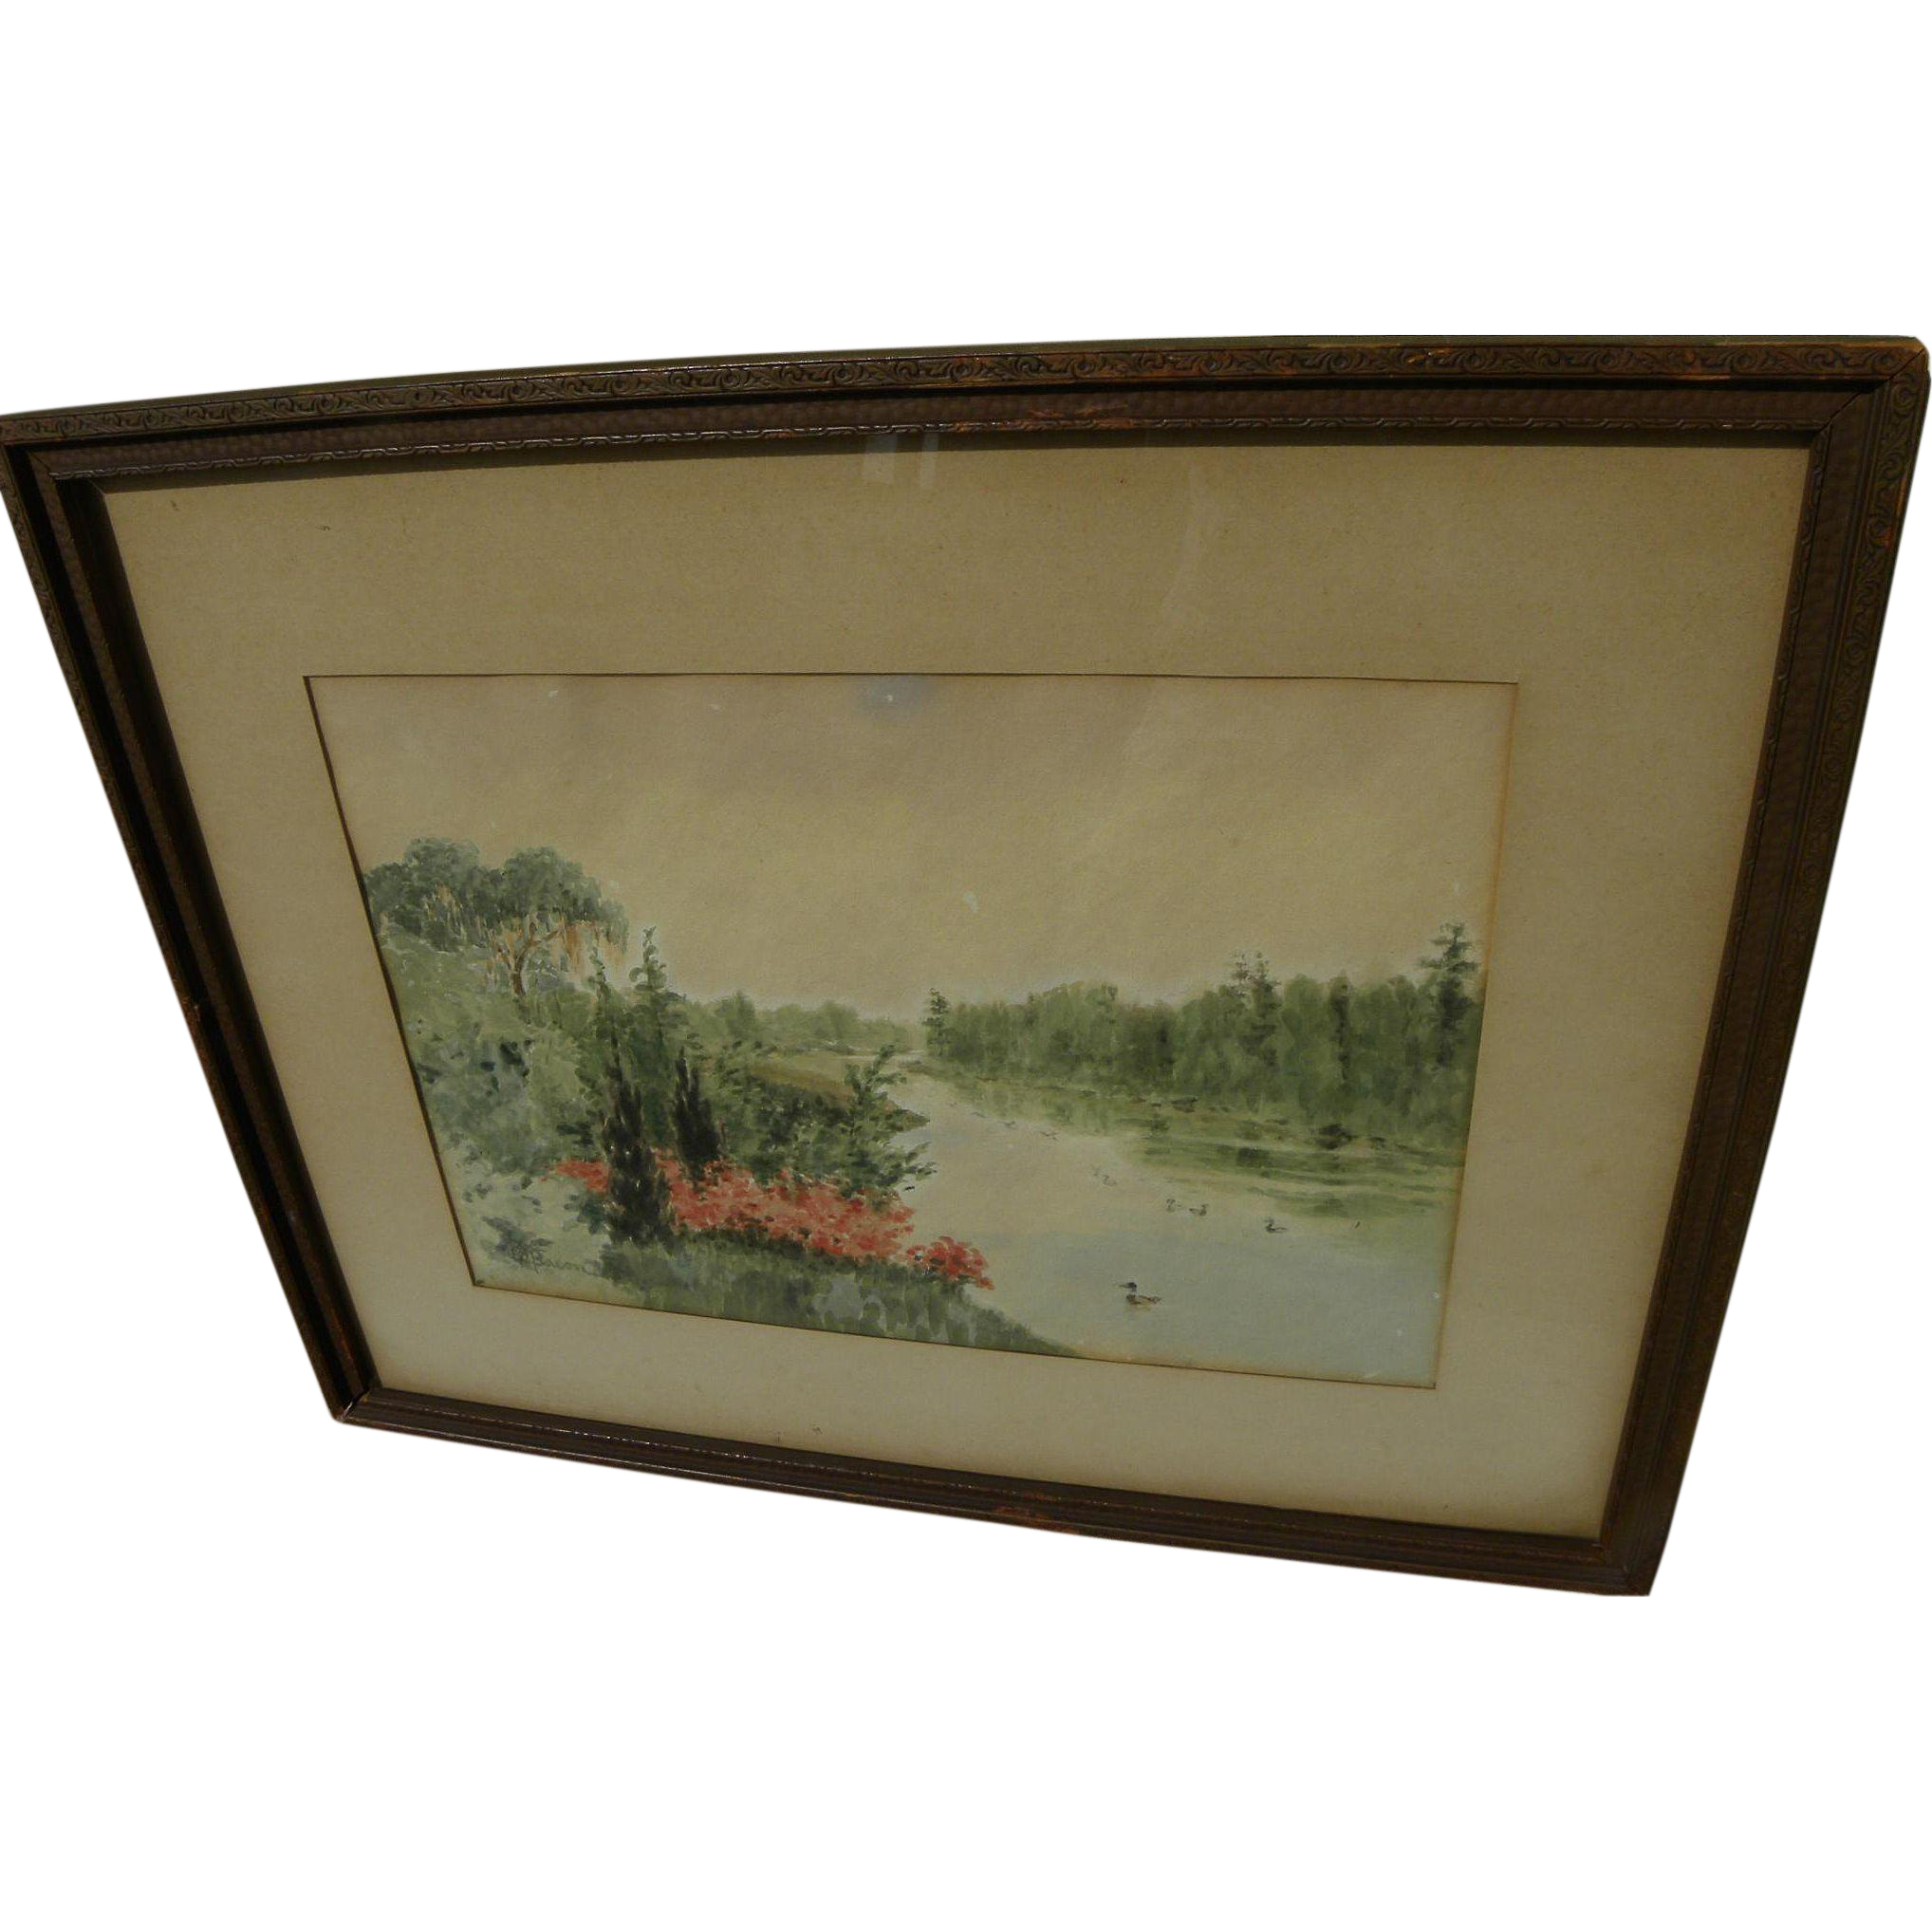 Vintage South Carolina watercolor landscape painting by historian and author Edgar Mayhew Bacon 1934